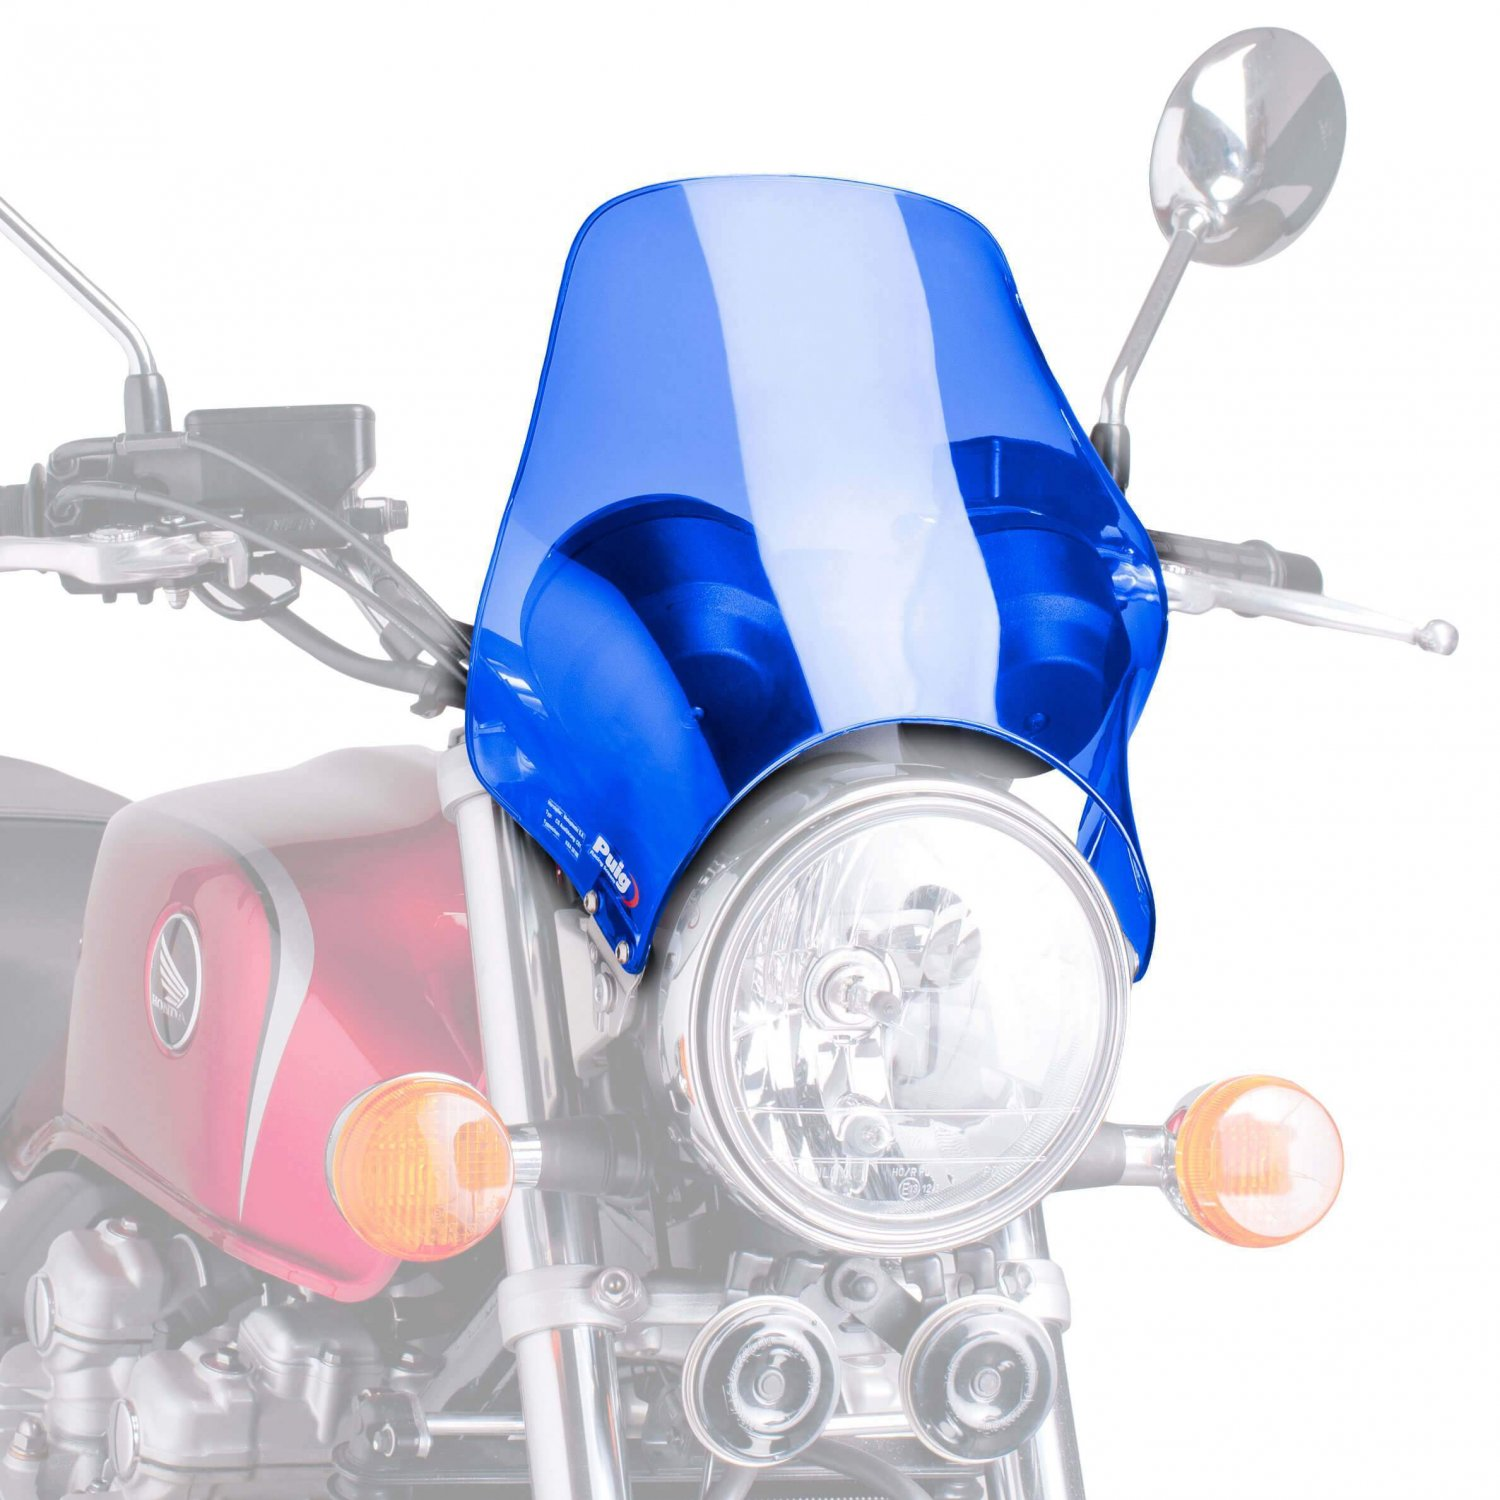 Bugspoiler - Universal Motorcycle Screen for Naked Bikes: Blue M0869A